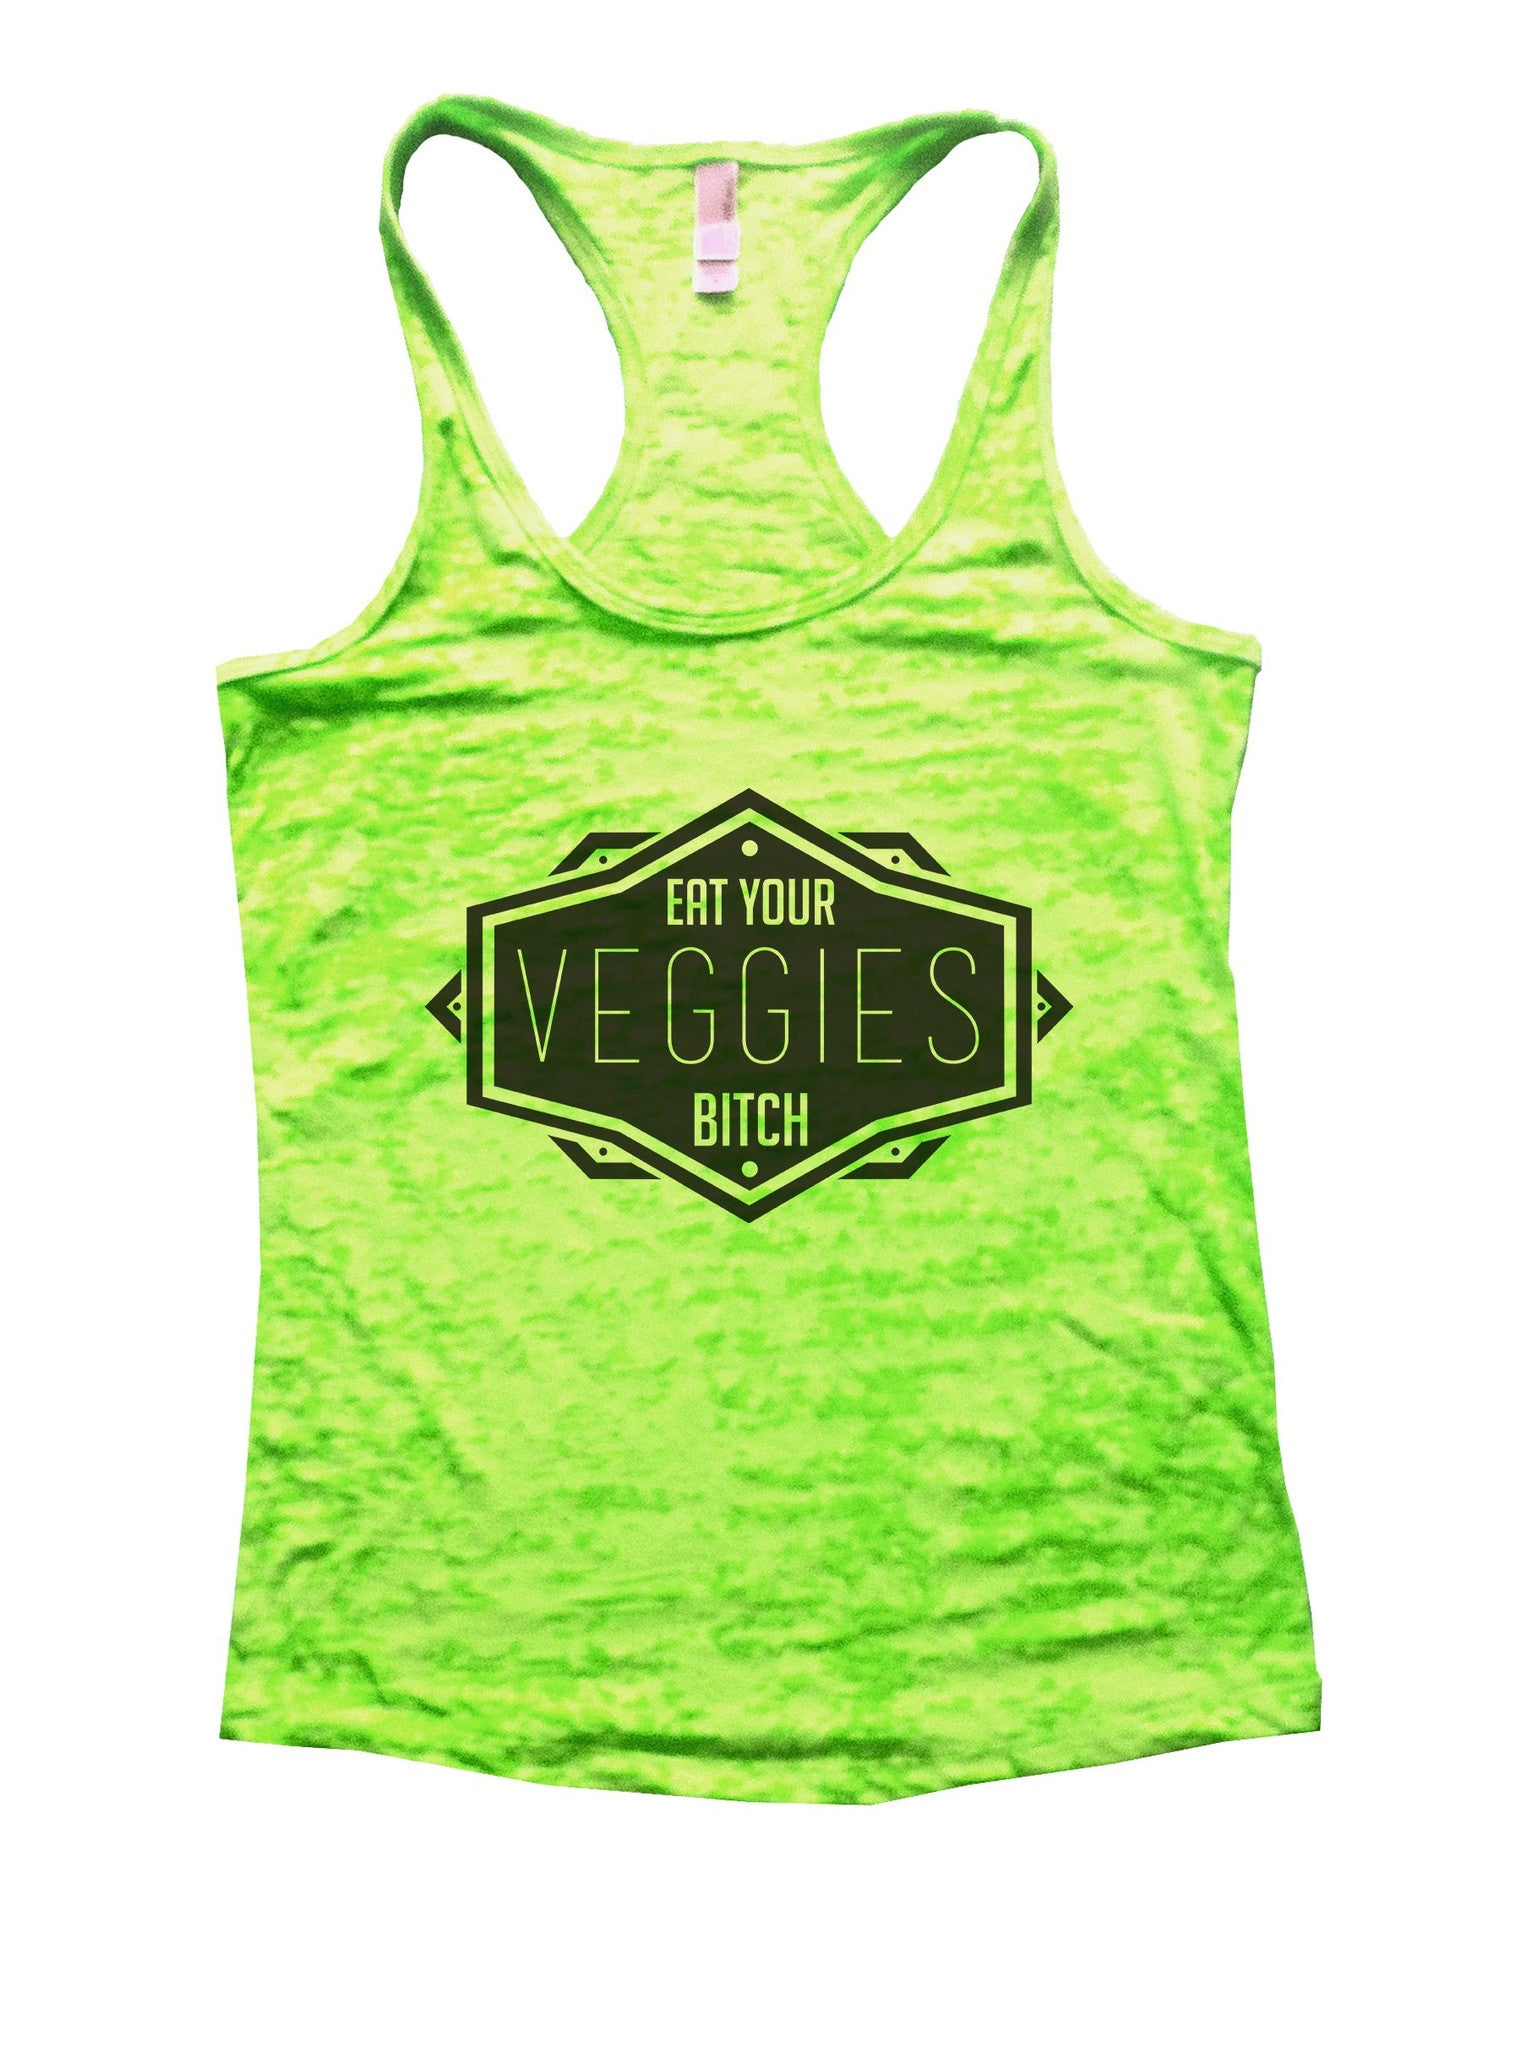 Eat Your Veggies Bitch Burnout Tank Top By BurnoutTankTops.com - 1111 - Funny Shirts Tank Tops Burnouts and Triblends  - 2